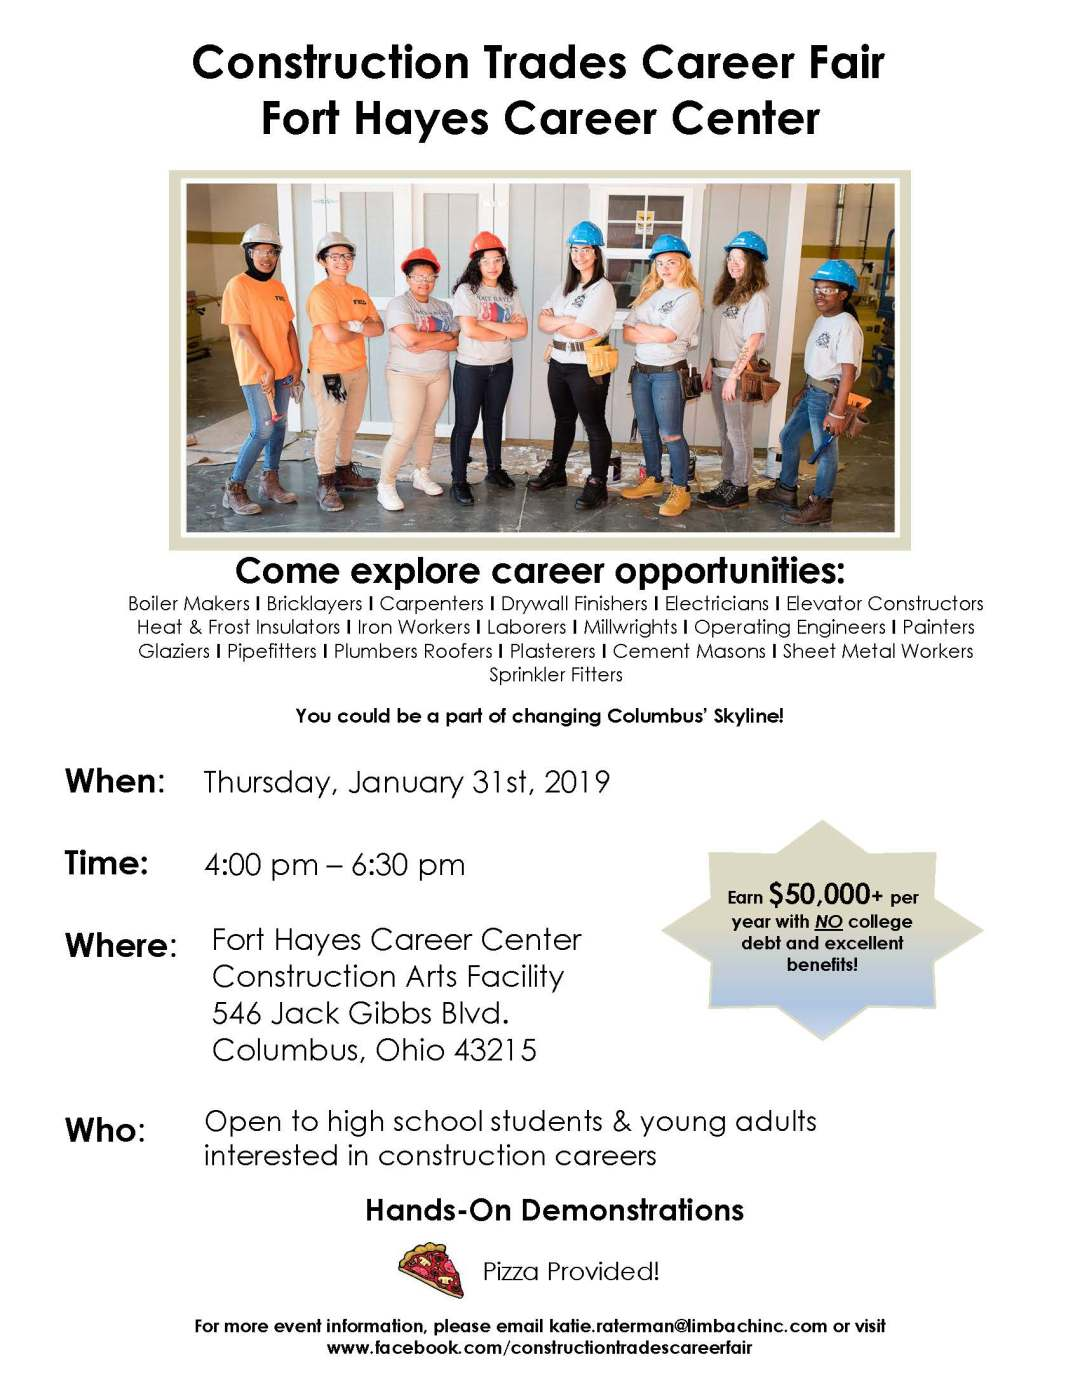 Construction Trades Career Fair Flyer 2019 11.2.18 (1)_Page_1